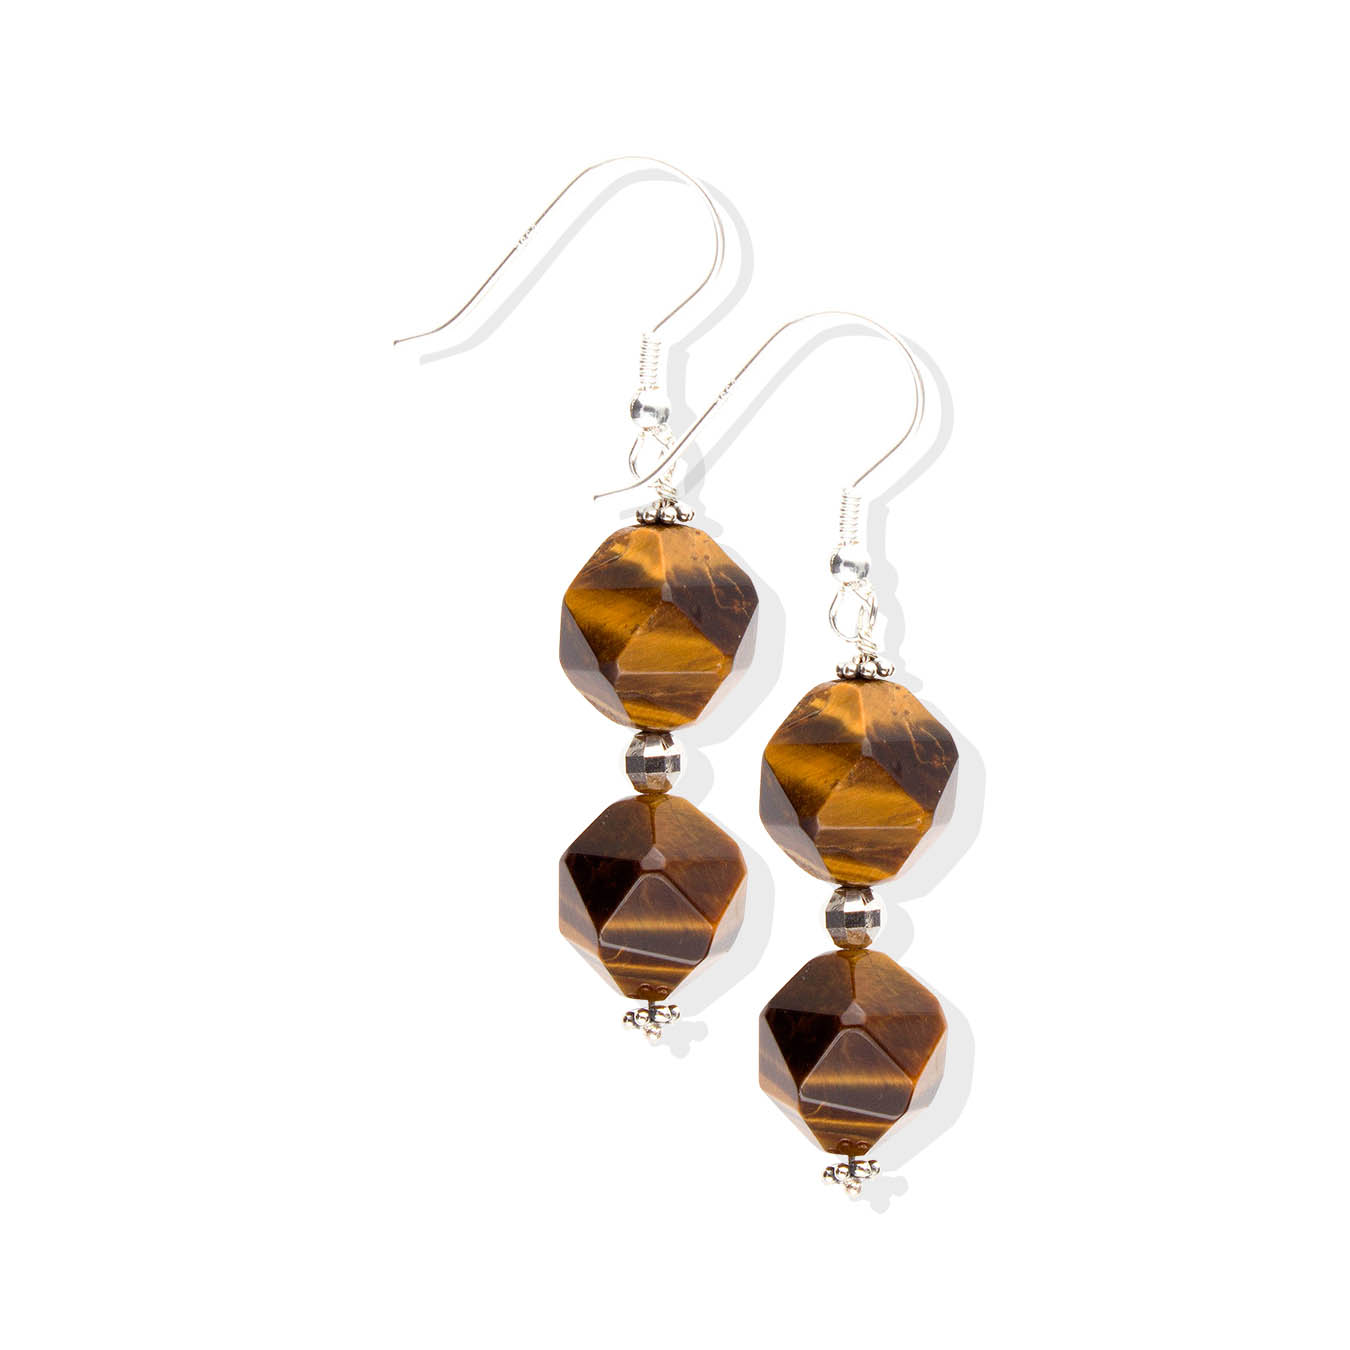 Handcrafted bold necklace made with tiger eye gemstones and 999 silver